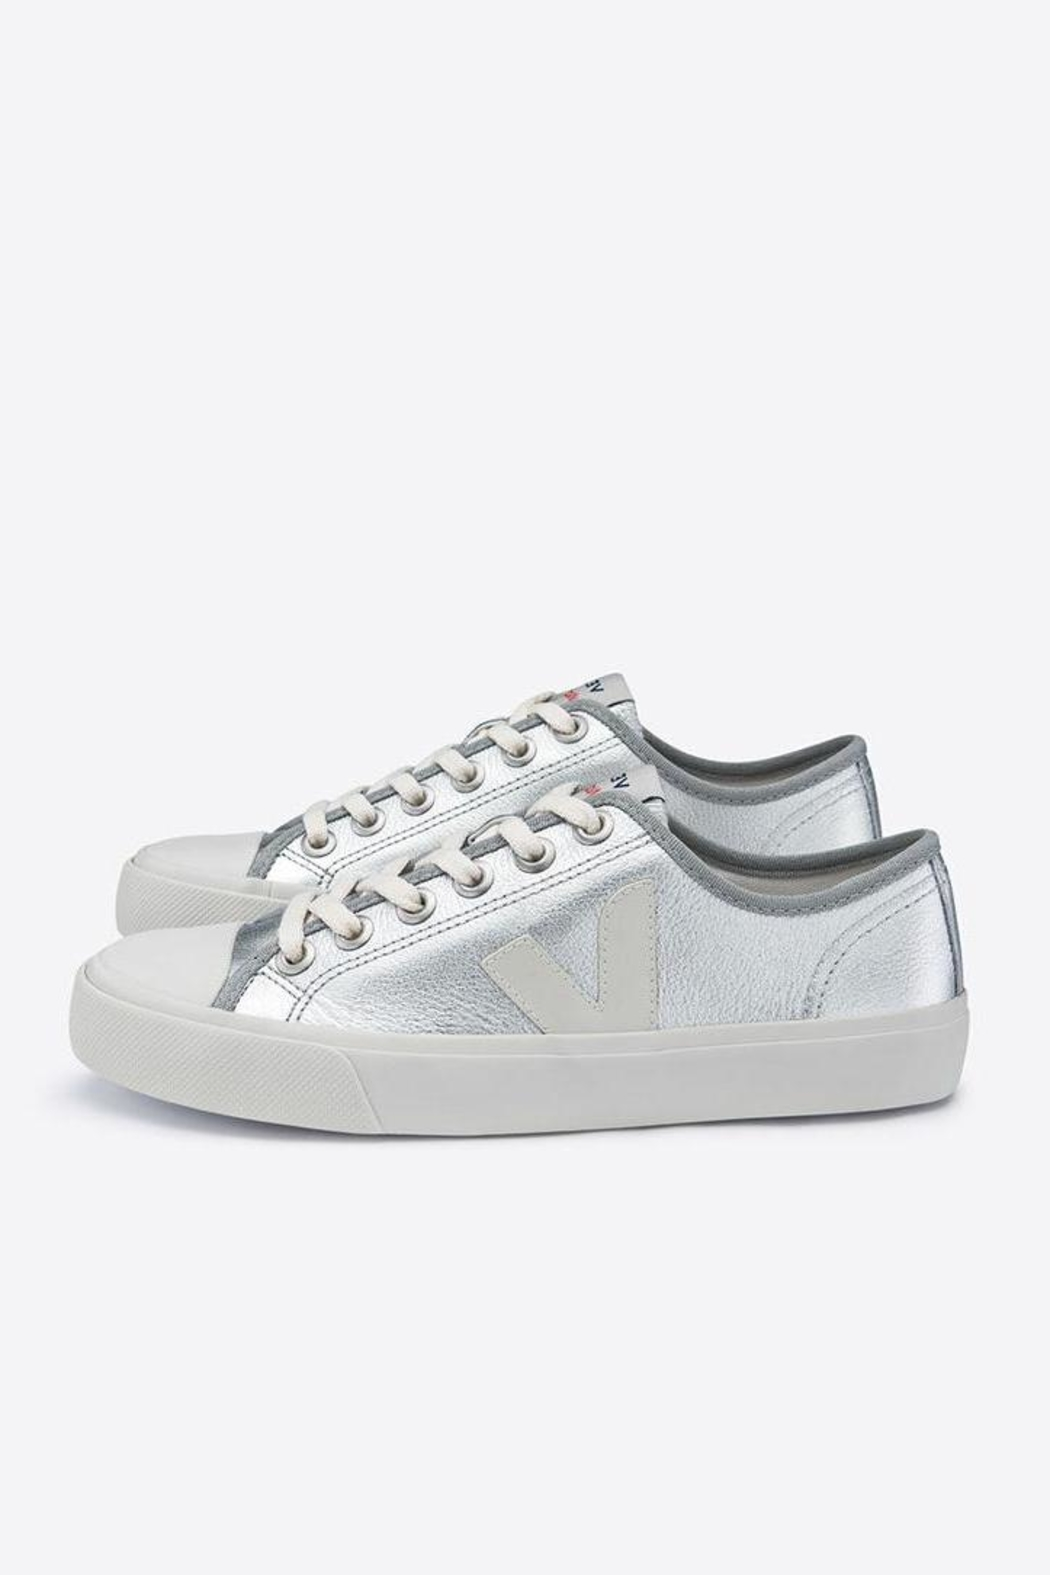 Veja Wata Leather Silver Shoes - Main Image